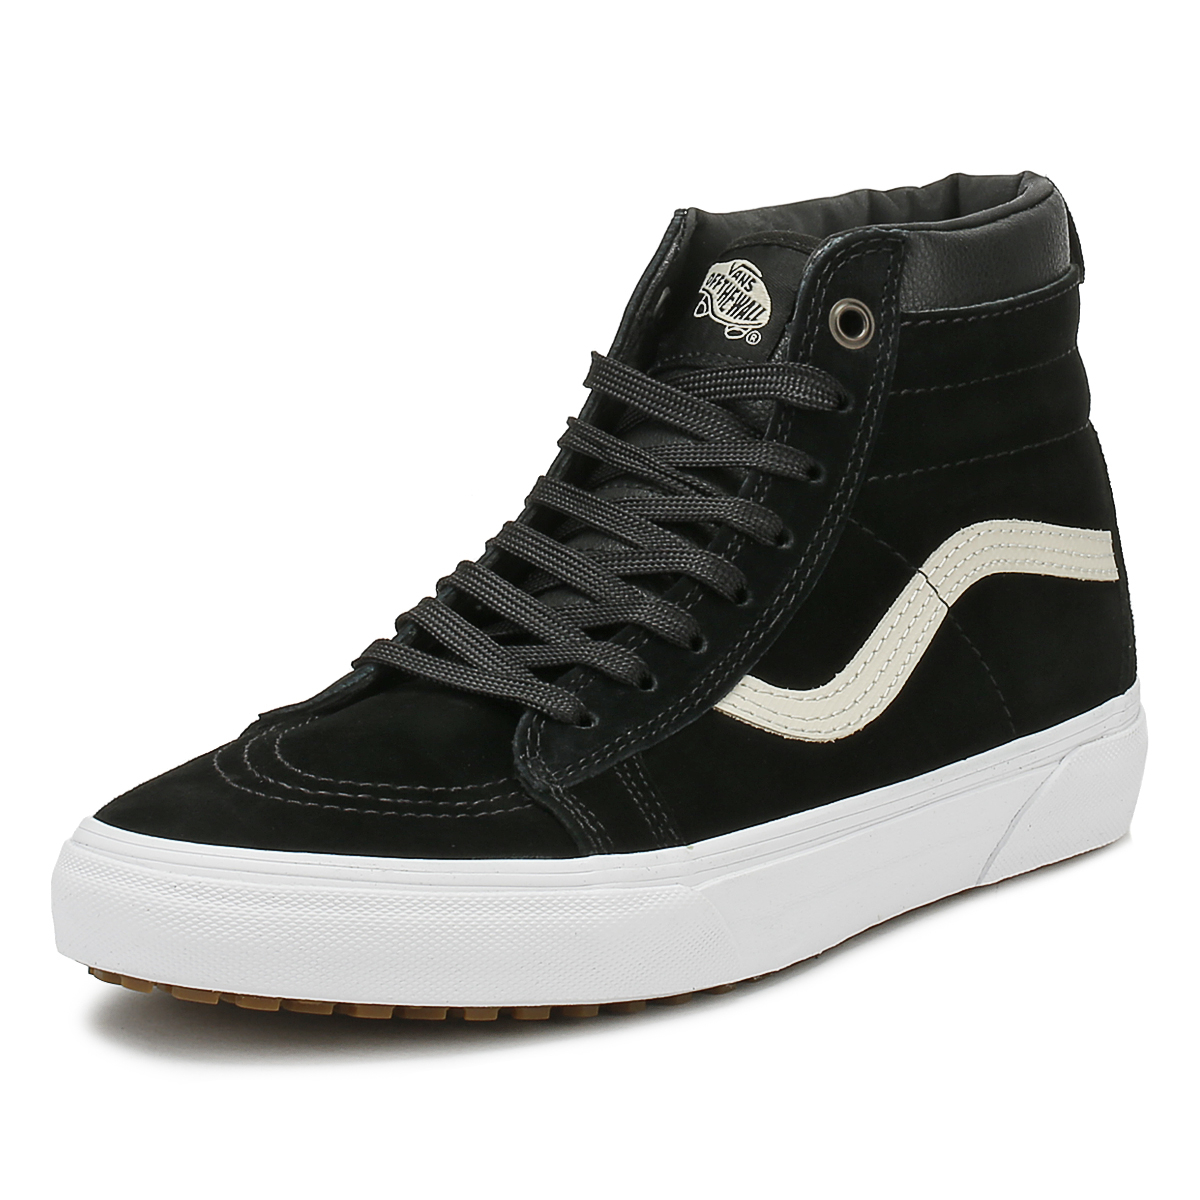 564b3e2963 Details about Vans Mens Black Night SK8-Hi MTE Trainers Leather Lace Up Skate  Shoes High Tops